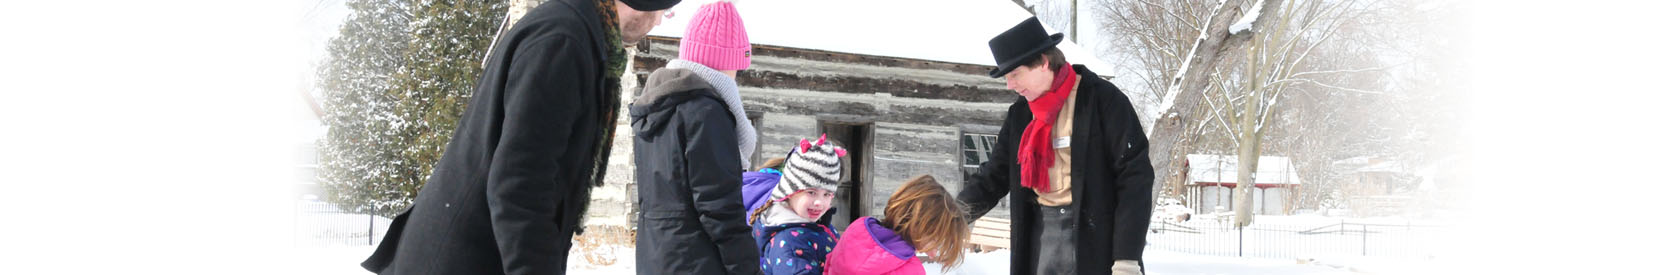 Homeschool Happening: Snowsnakes, Sleds, and School